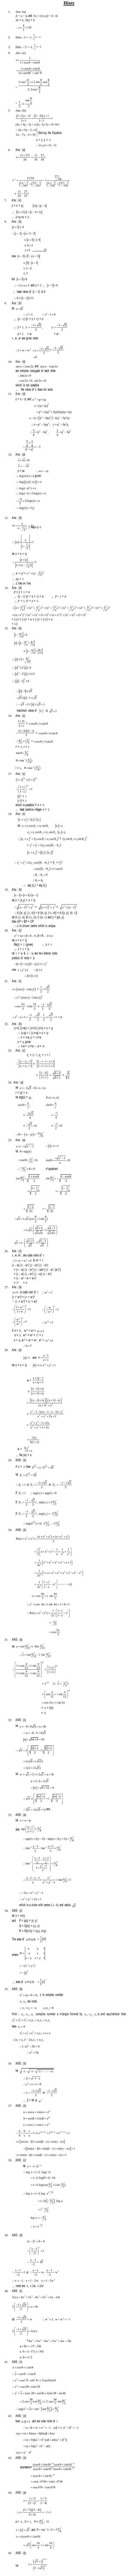 JEE Question Bank: Maths - Complex Numbers